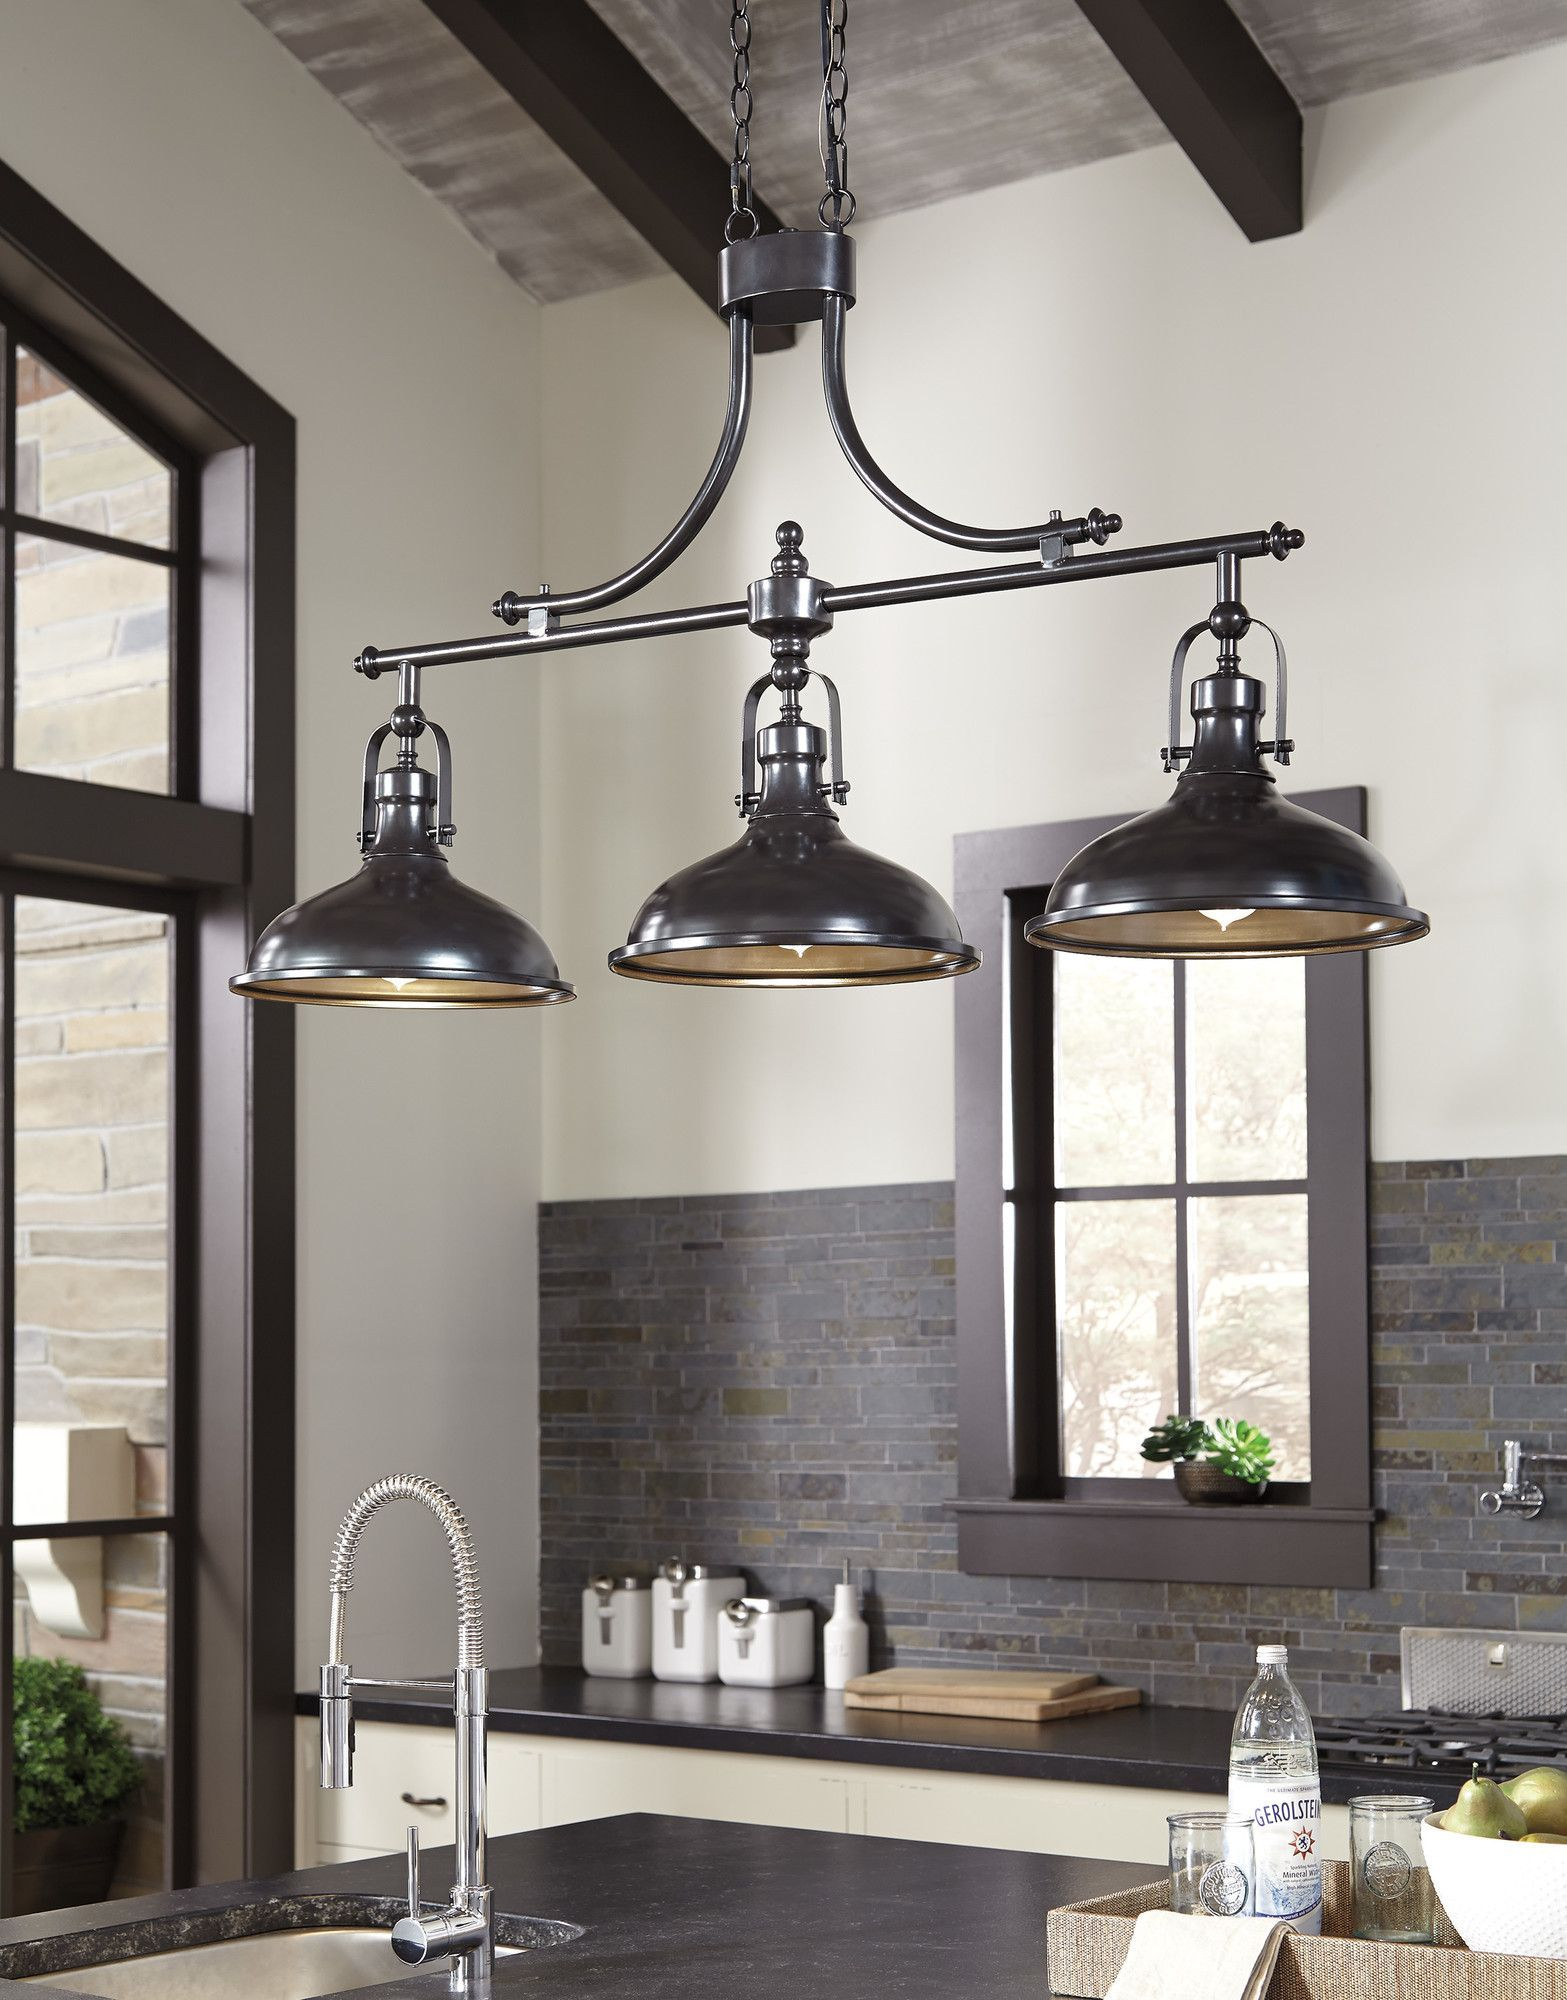 Exceptionnel Joseph 3 Light Kitchen Island Pendant U0026 Reviews | Joss U0026 Main